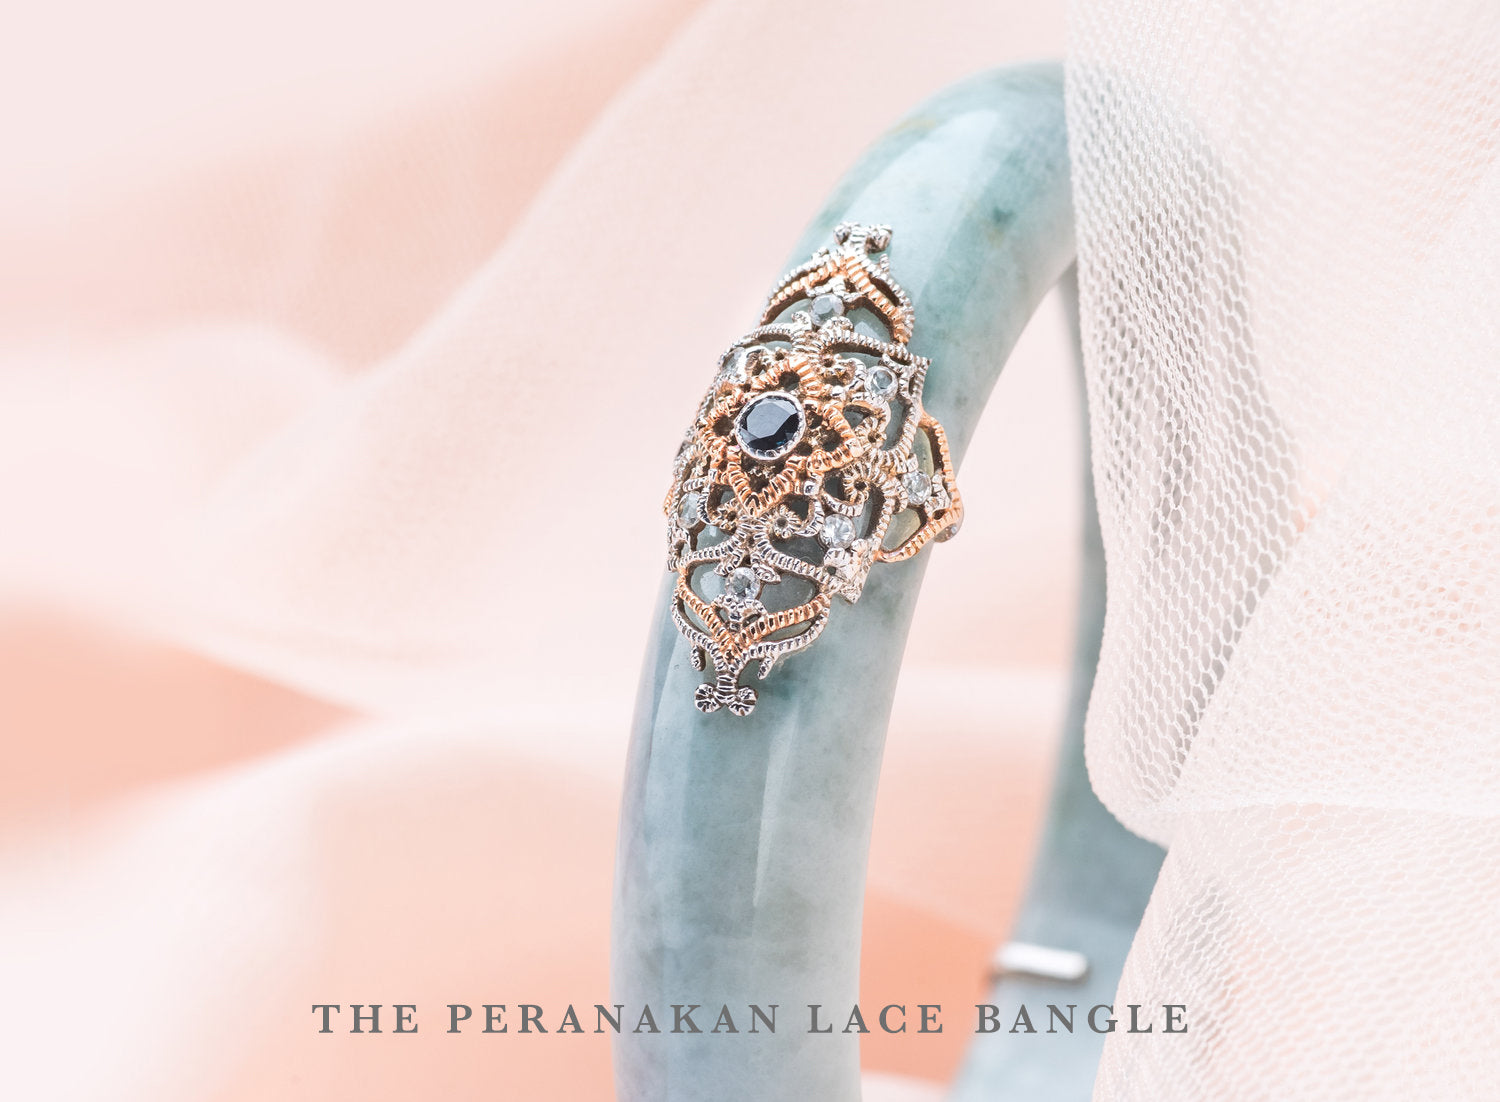 Peranakan Lace Bangle